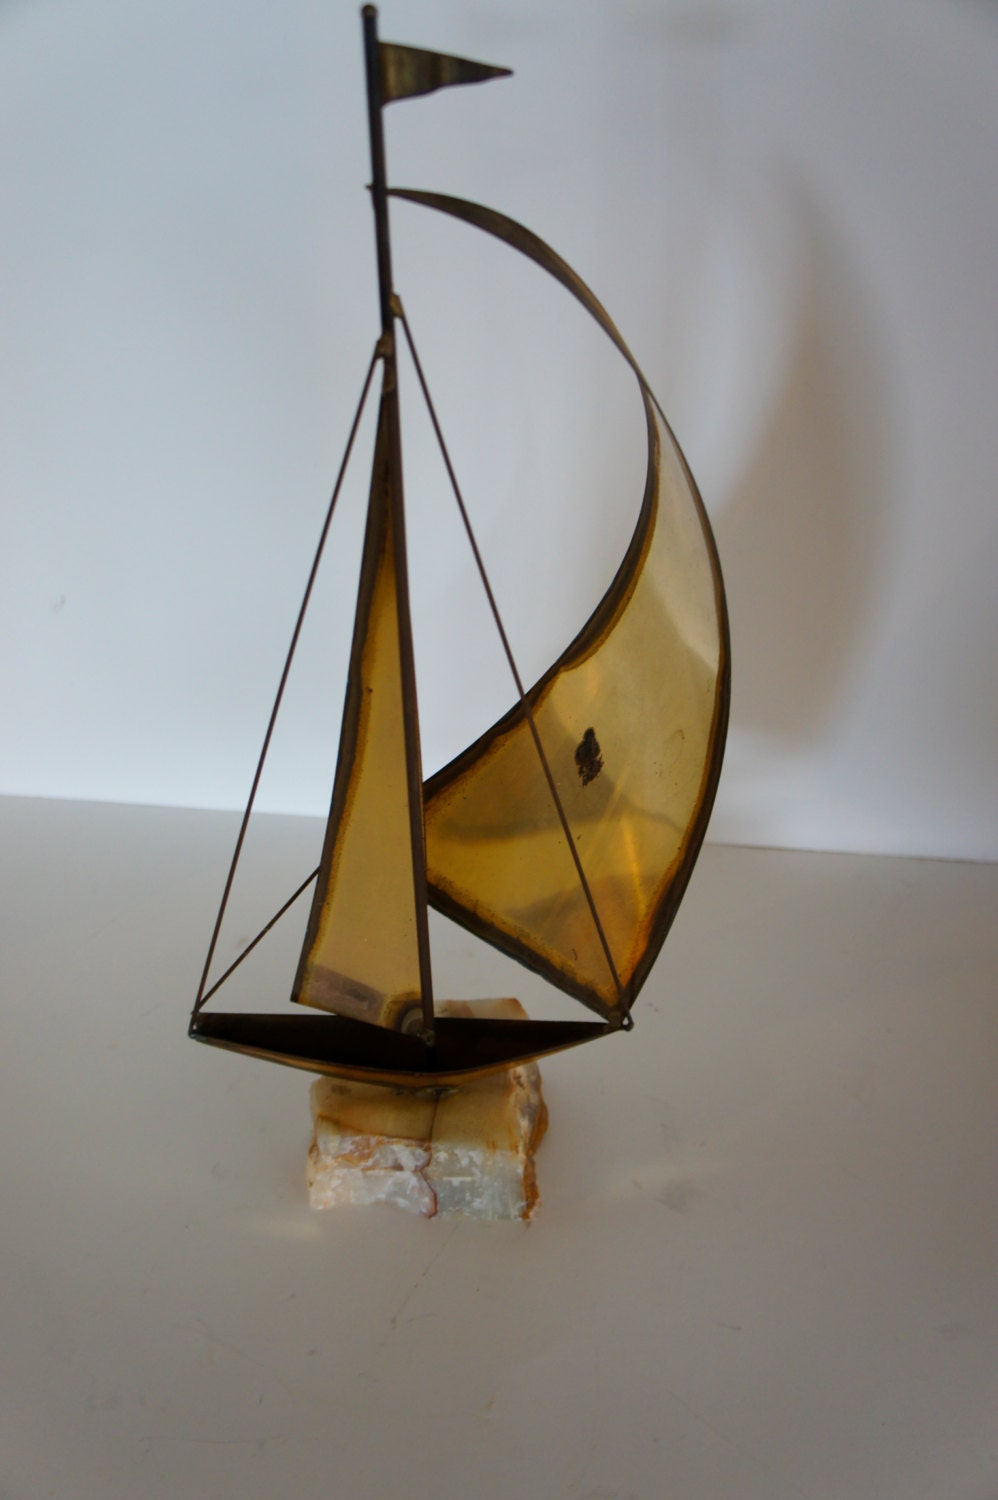 Vintage Home Decor Brass Sailboat On Marble Slab By Gleaned